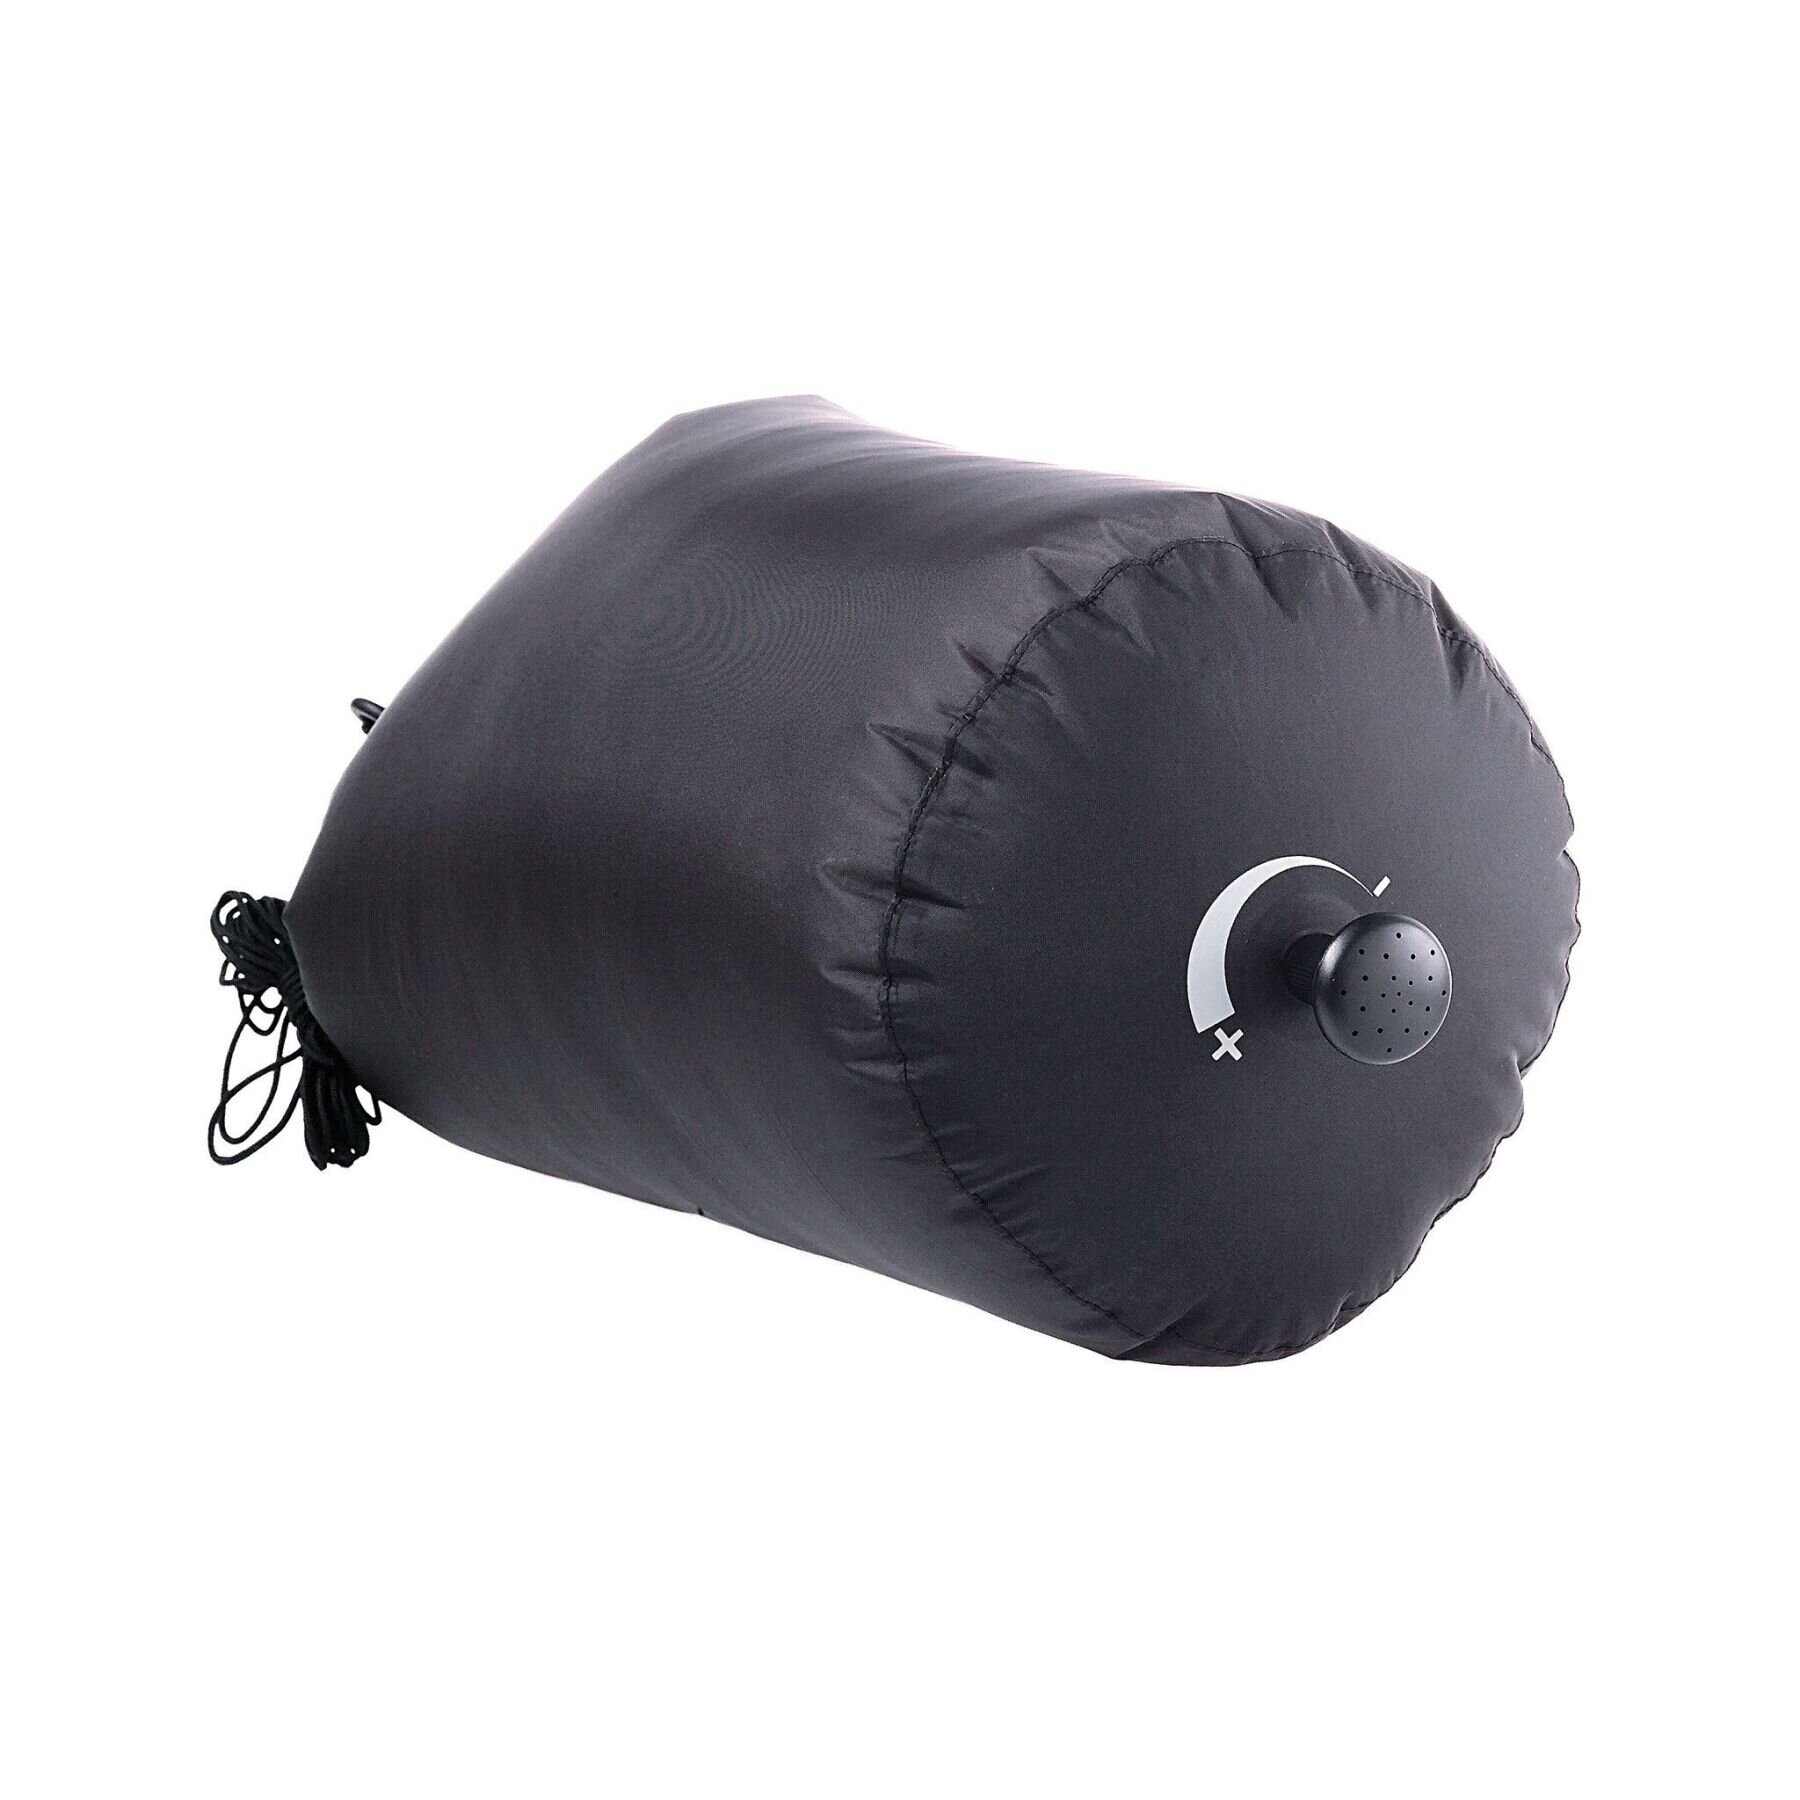 Душ переносной Sea To Summit - Pocket Shower Black, 10 л (STS APSHOWER)